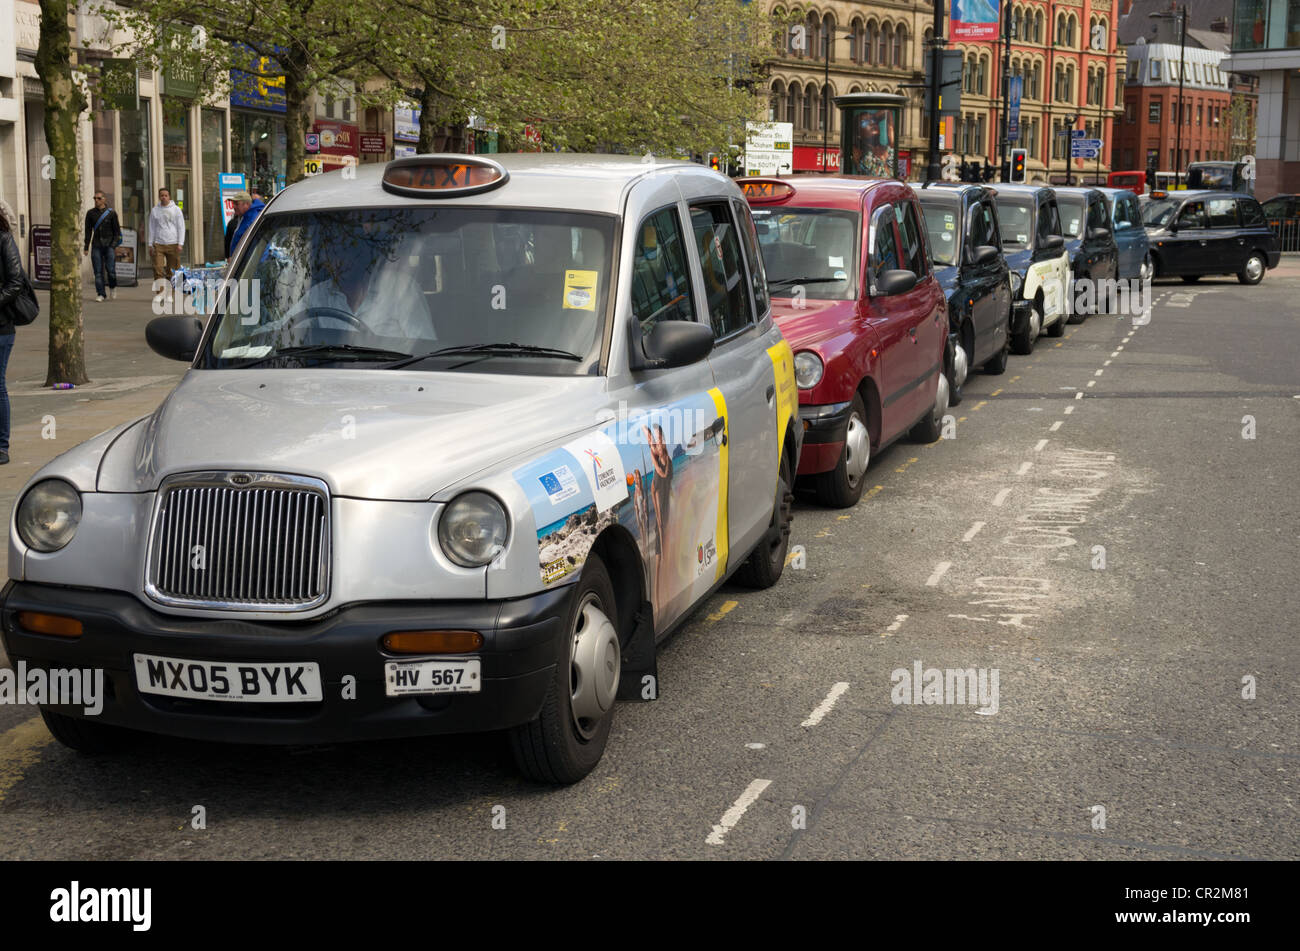 A view of taxis Picadilly Square Manchester - Stock Image